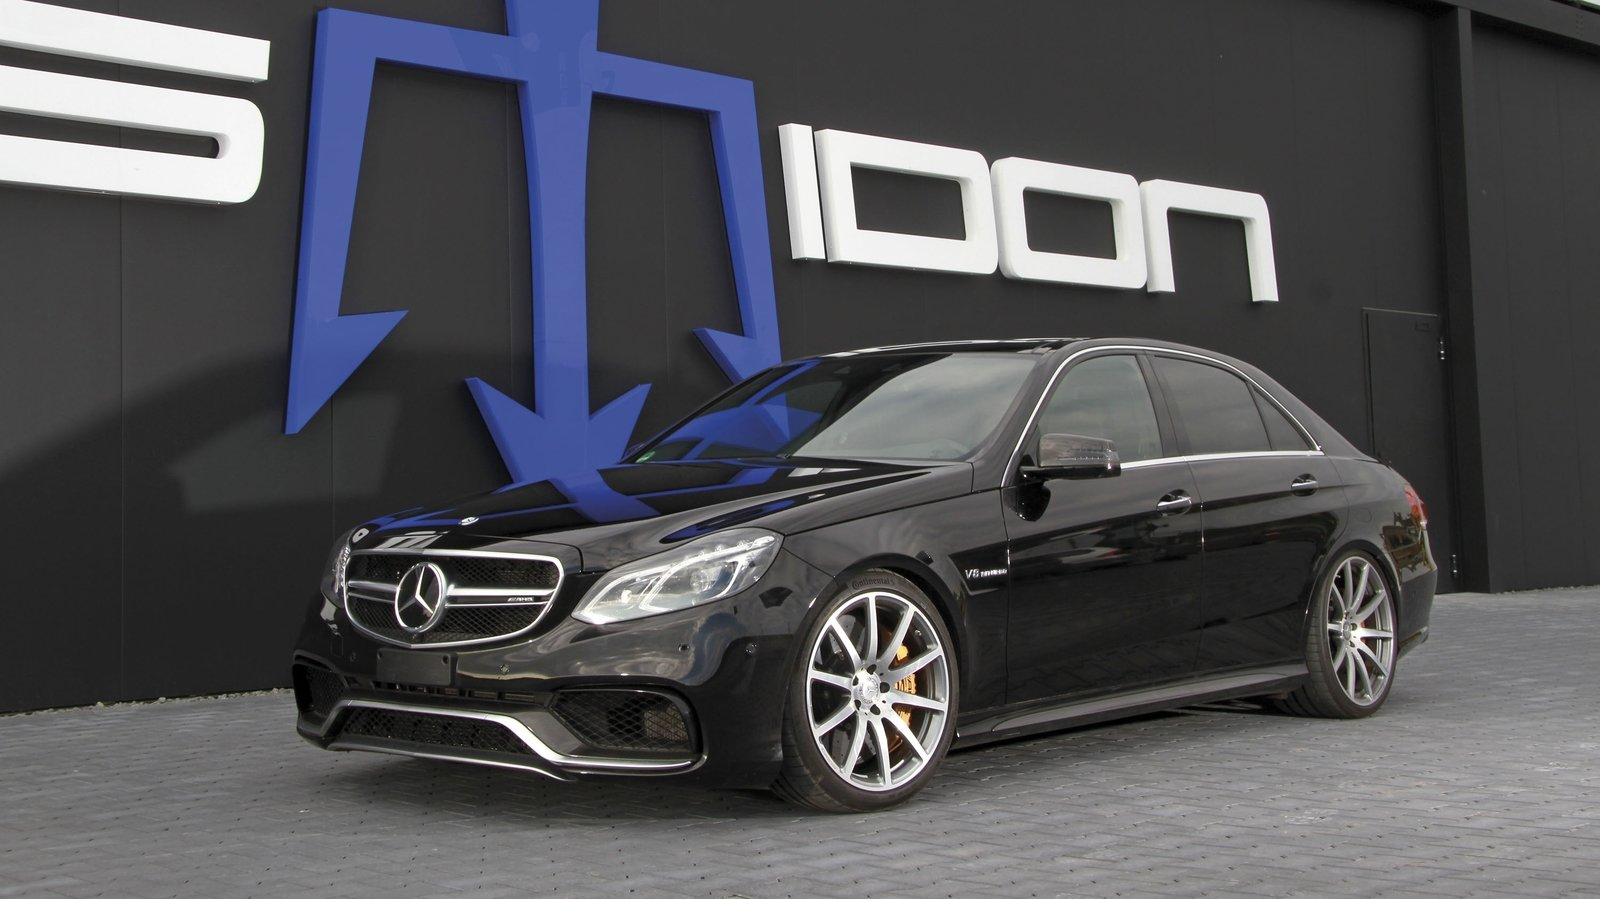 posaidon gives the 2017 mercedes amg e63 s 1 090 hp. Black Bedroom Furniture Sets. Home Design Ideas